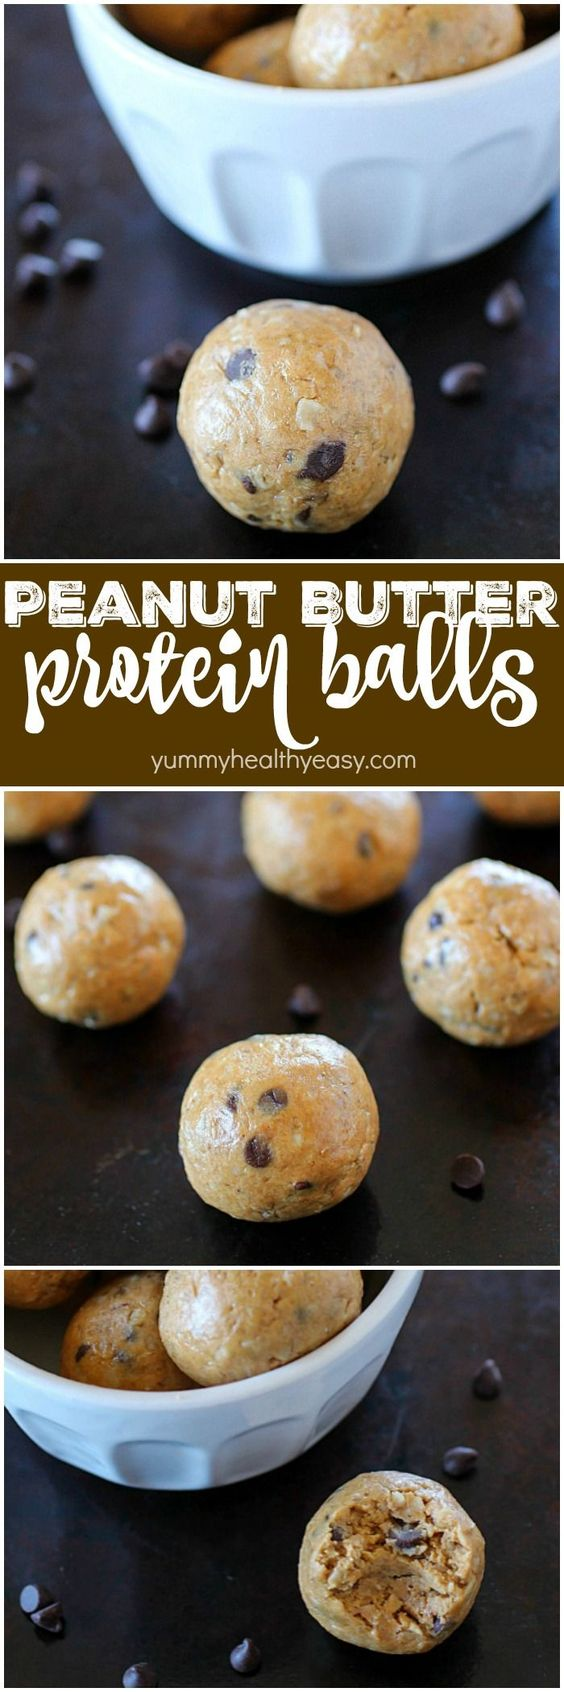 Protein balls filled with peanut butter, protein powder and oats make the most… #TheBeautyAddict